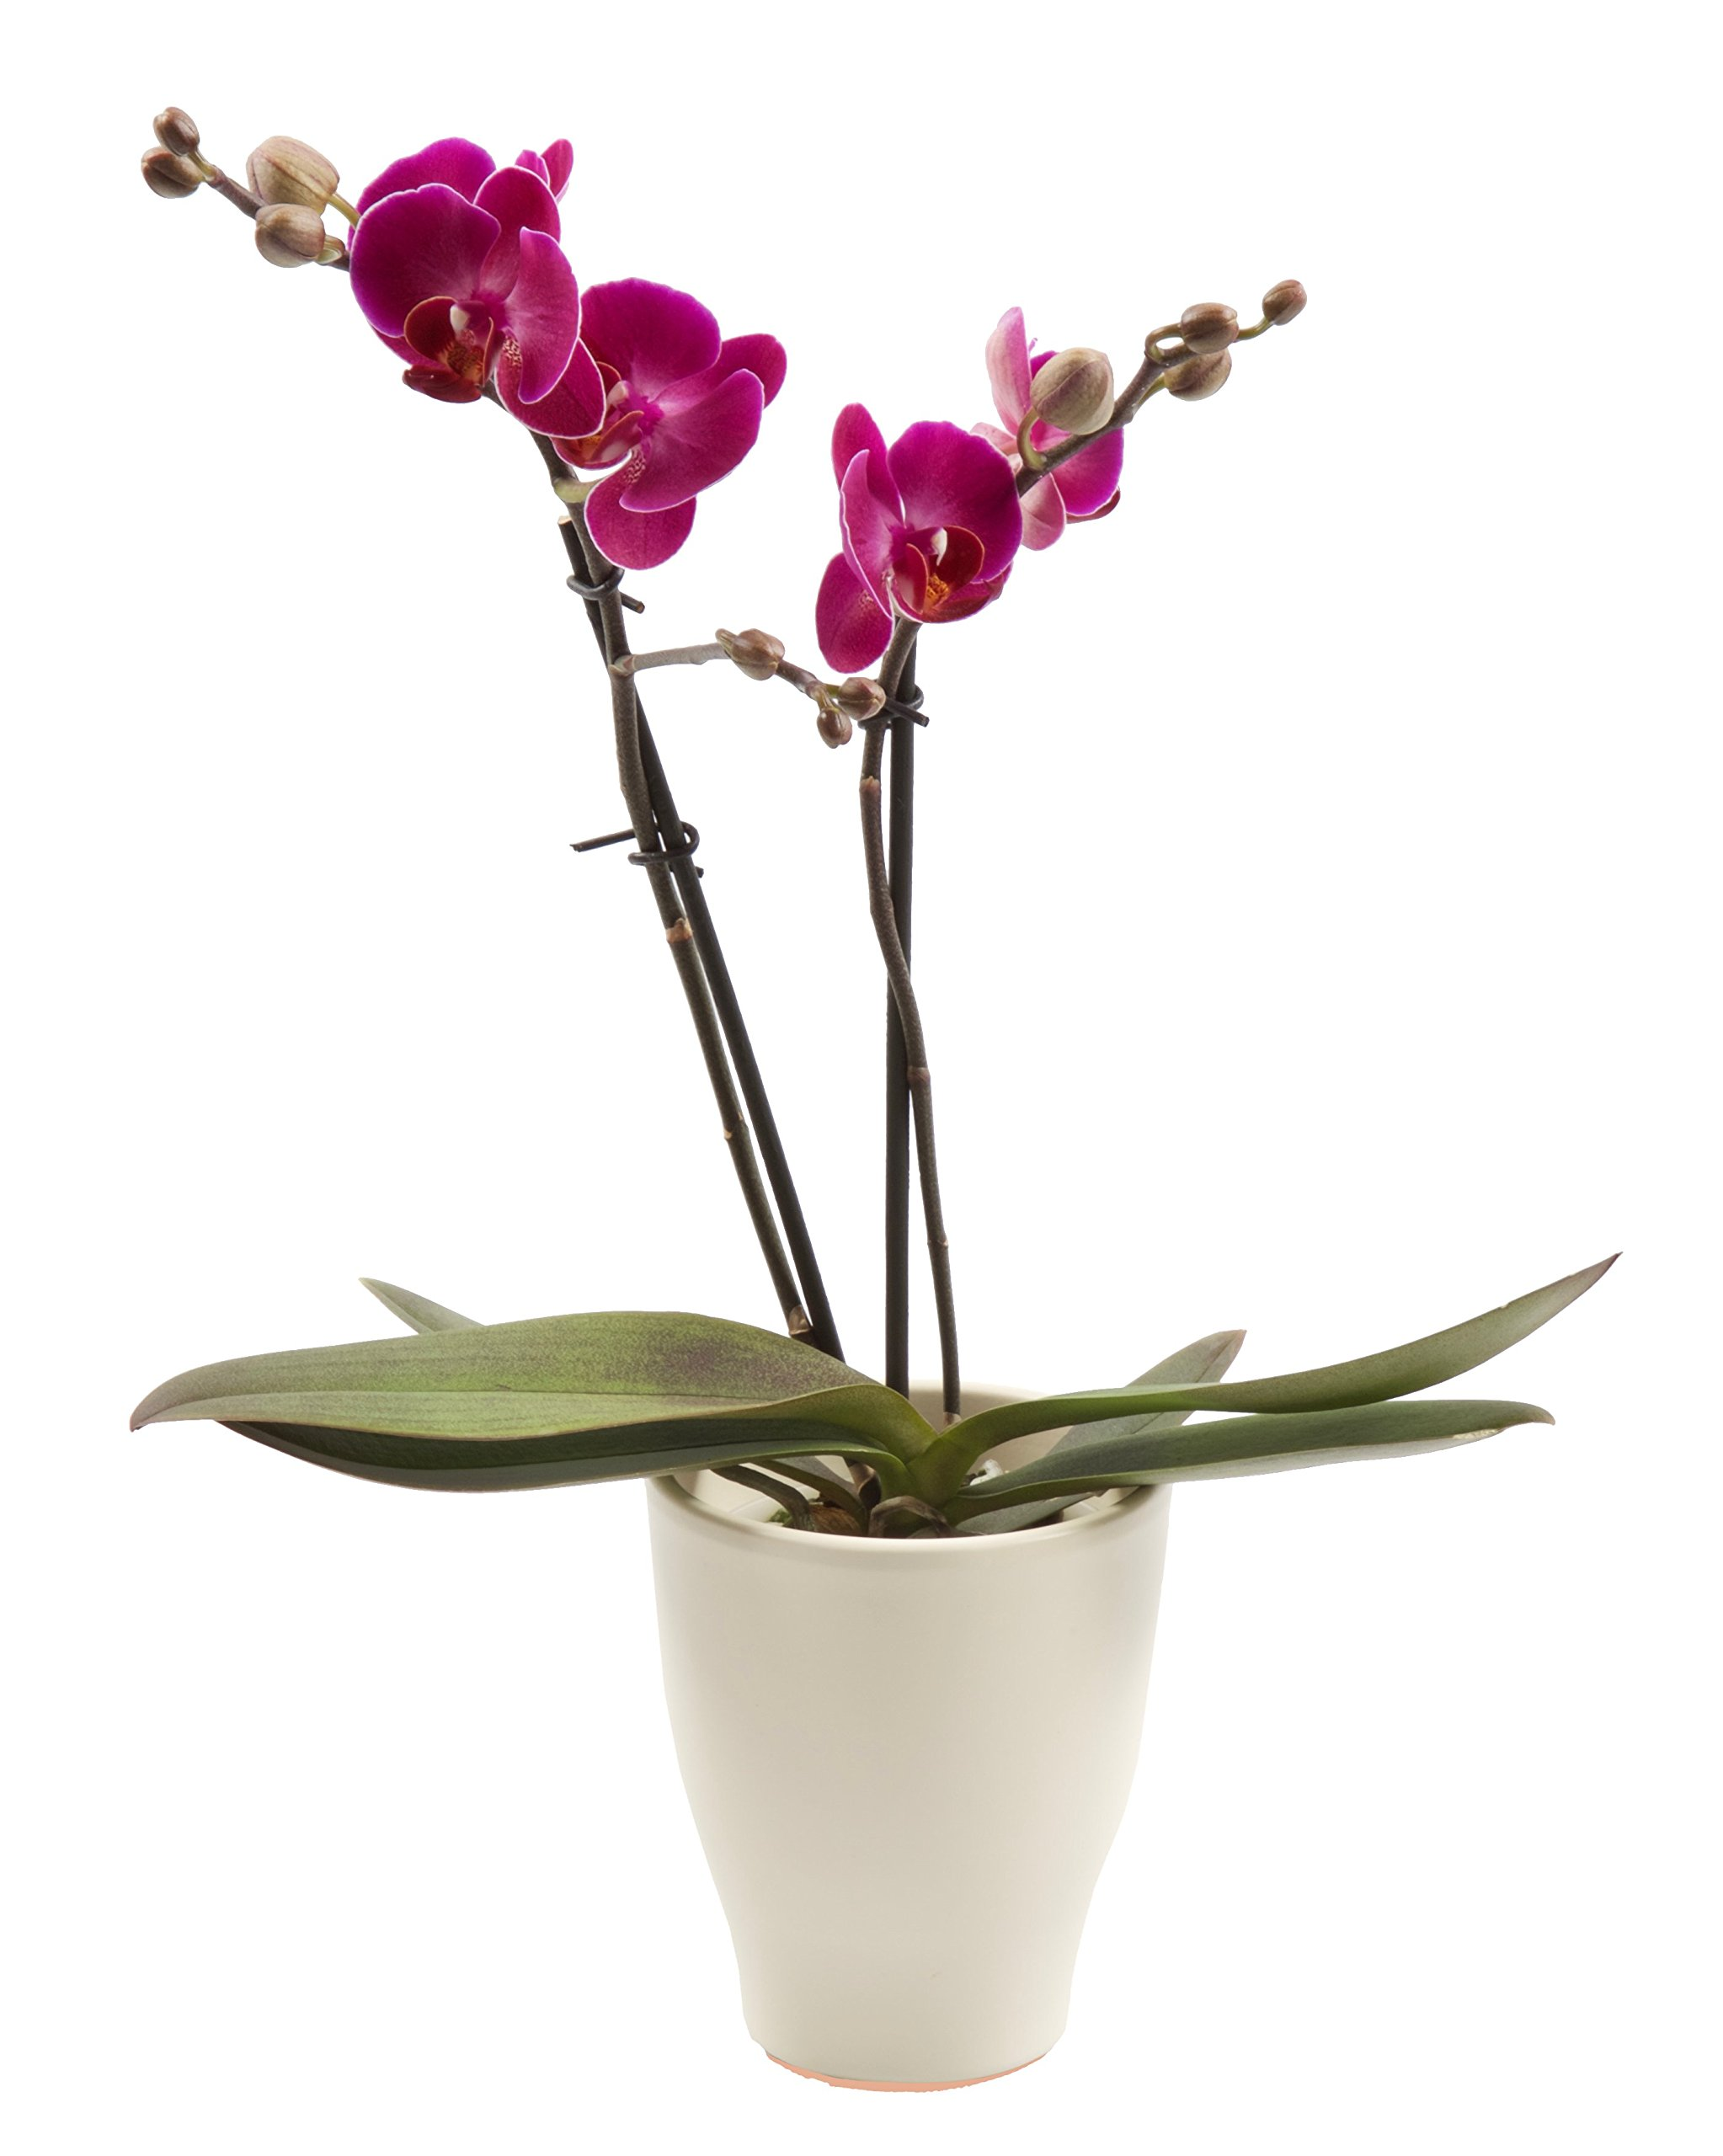 Color Orchids Live Blooming Double Stem Phalaenopsis Orchid Plant in Ceramic Pot, 15''-20'' Tall, Purple Blooms